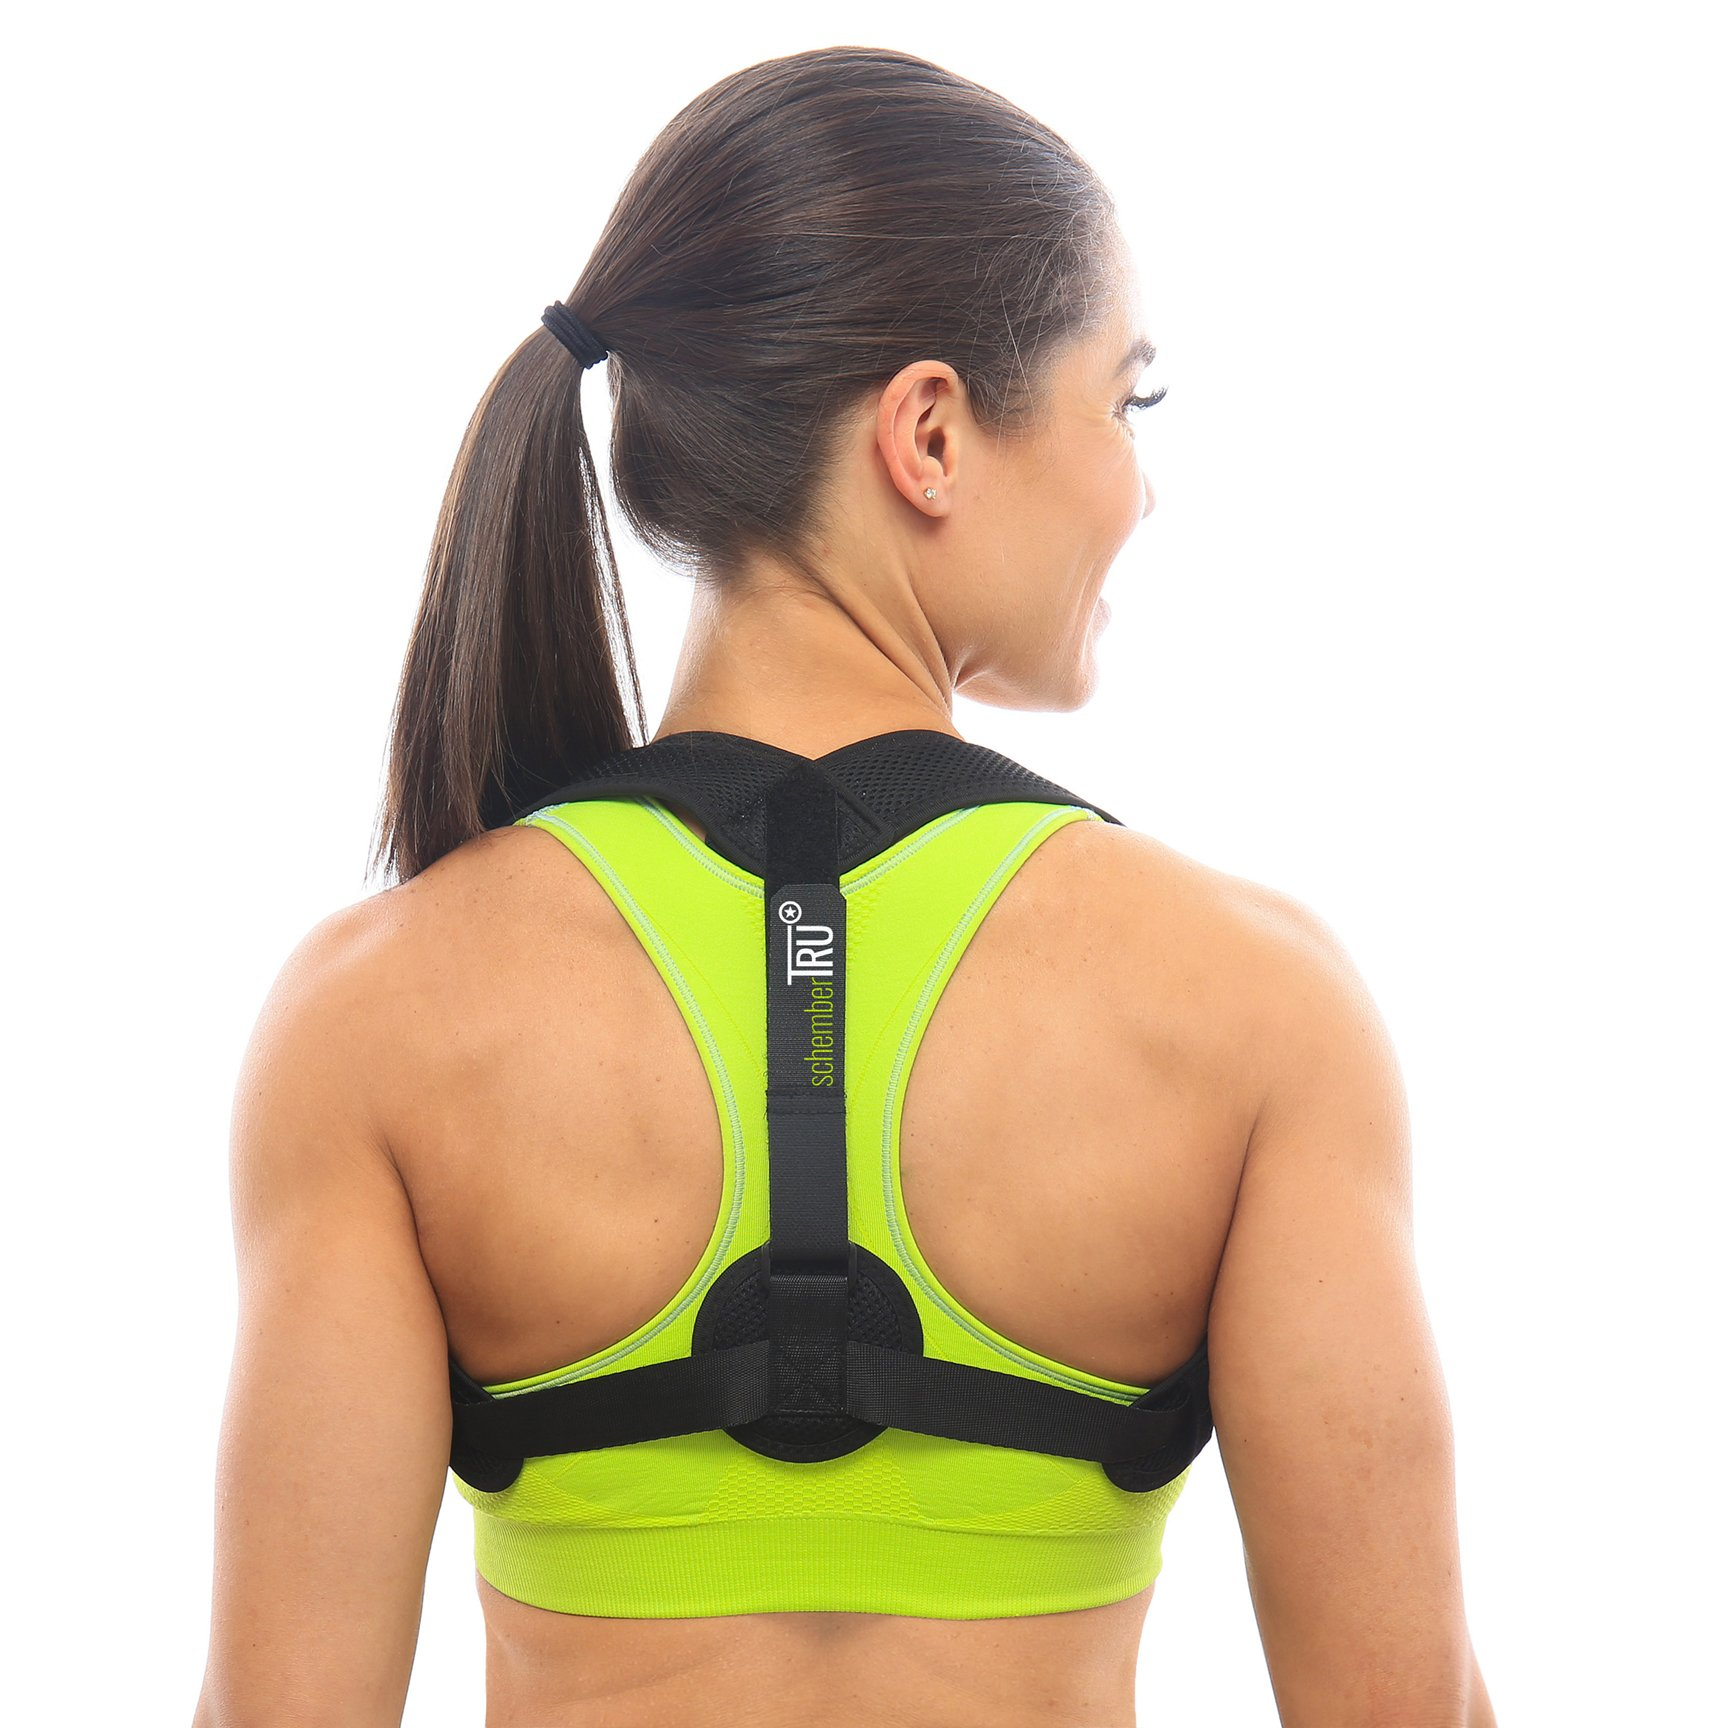 Posture Corrector for Women & Men - Comfortable, Simple & Adjustable Back Support for Pain Relief and Posture Restoration - Use at Your Desk or Gym